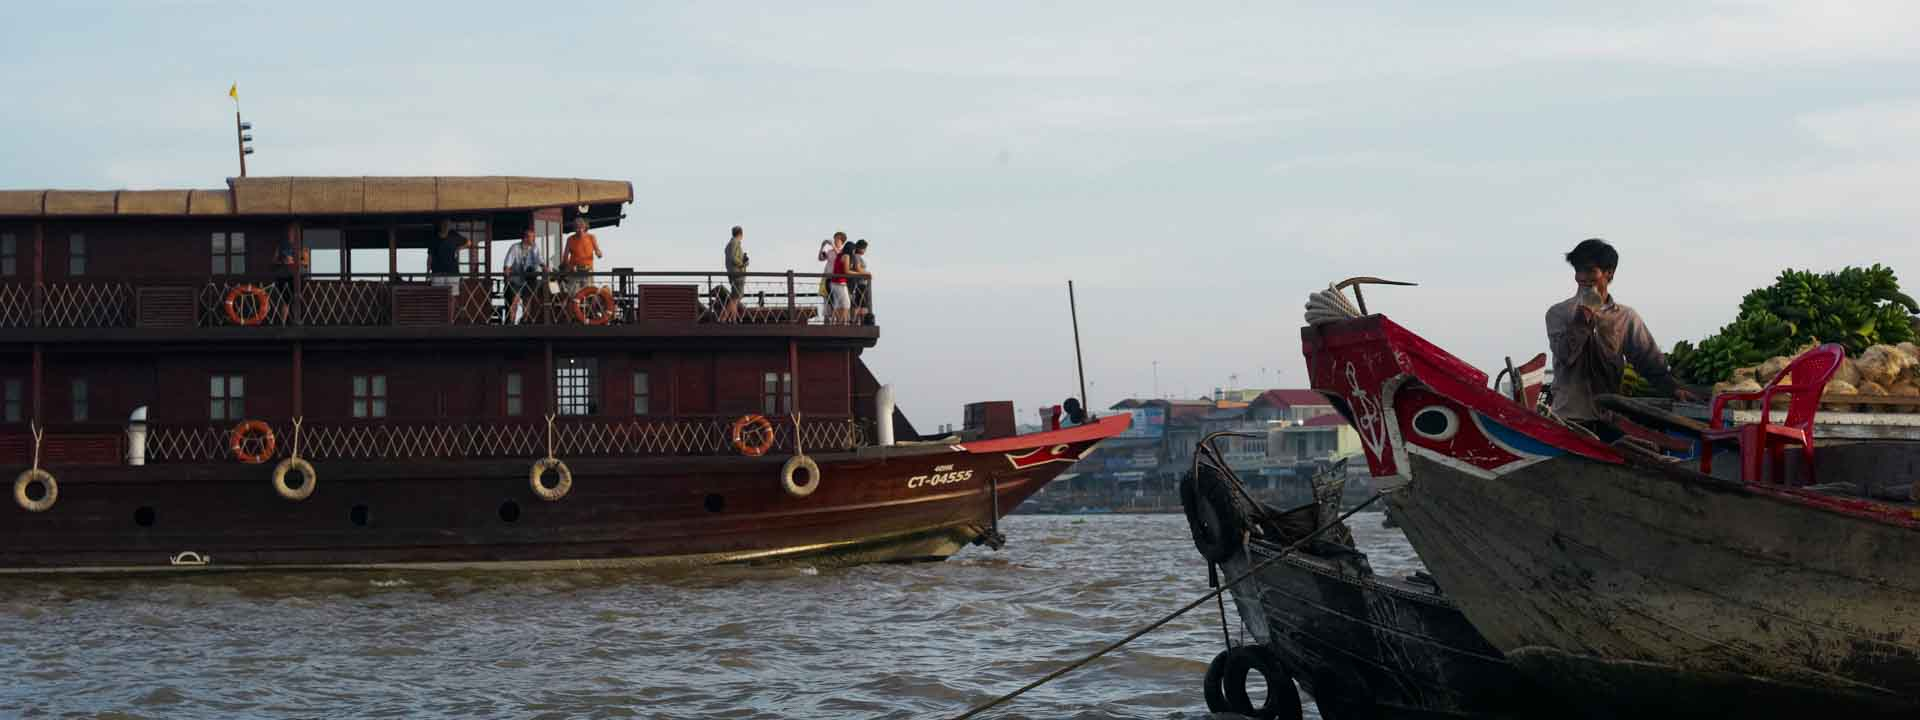 Exploring Mekong Delta on L'Amant Cruise in Style 3 days